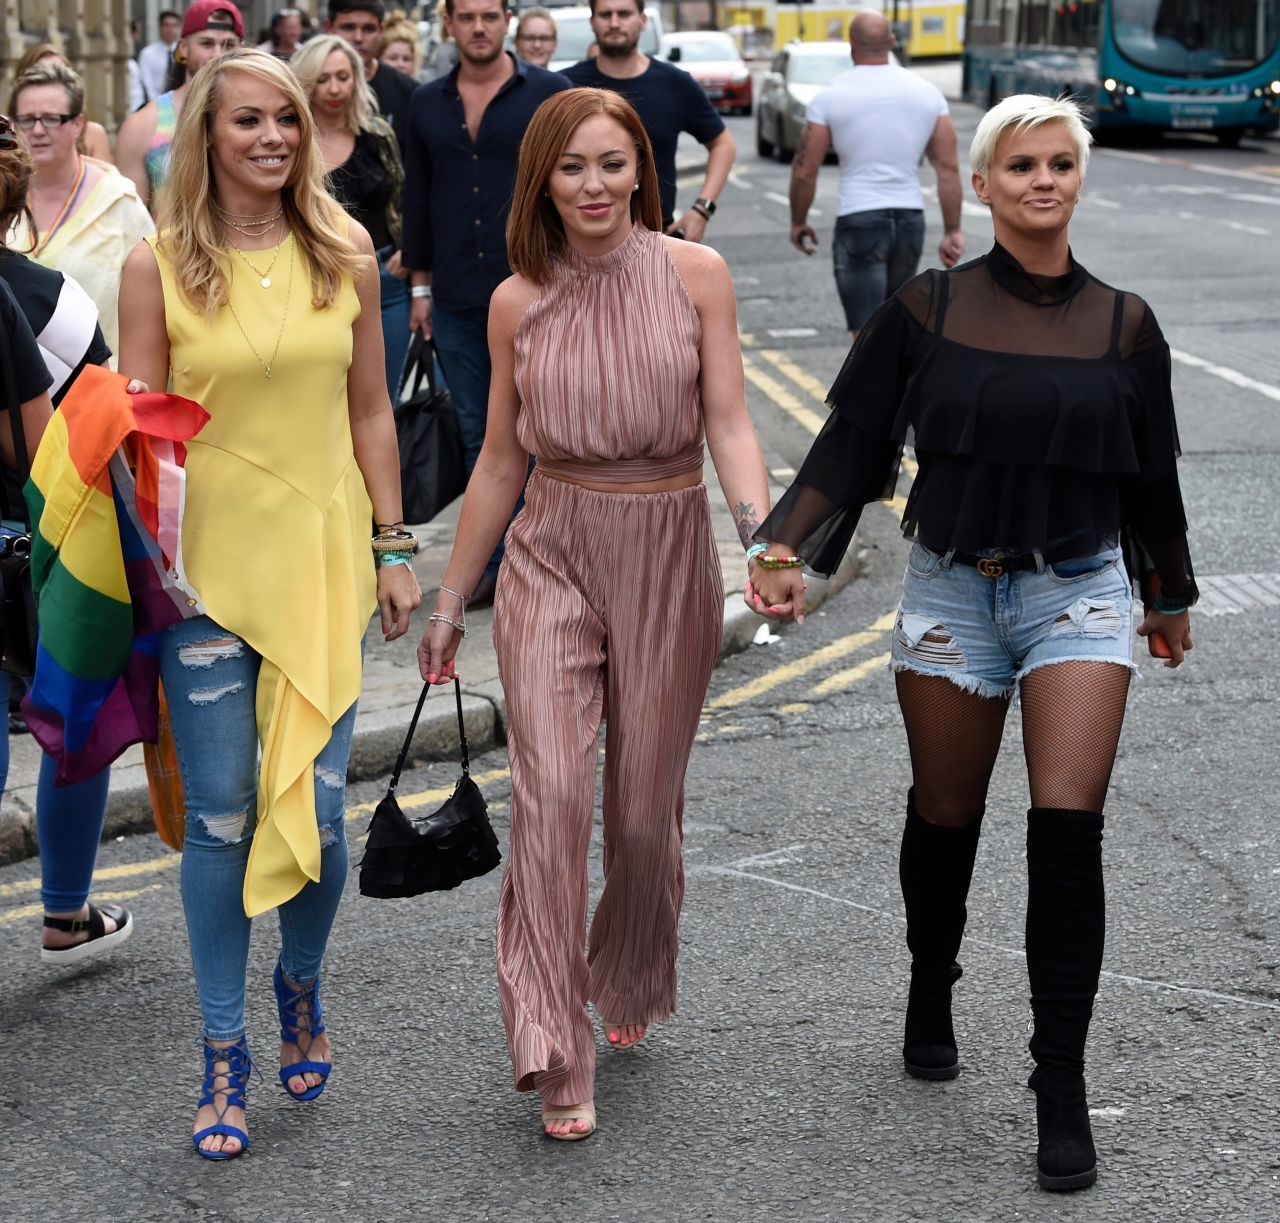 Atomic kitten pose for pictures in liverpool